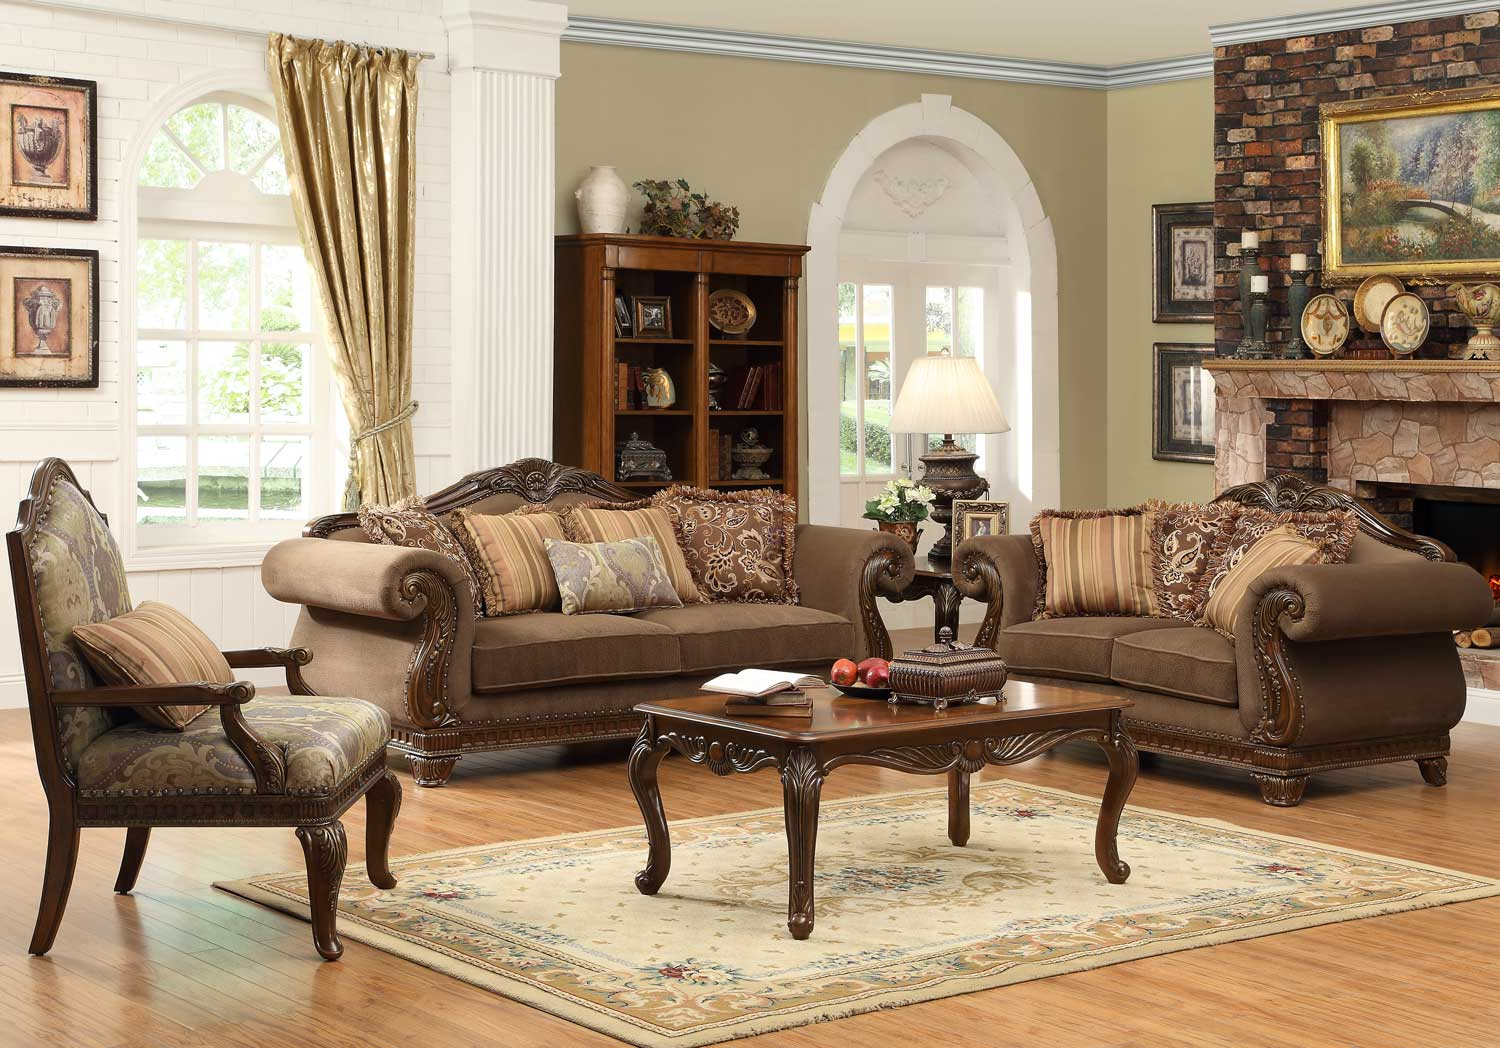 Ashley Furniture Dining Room Sets Prices Homelegance Lambeth Ii Sofa Set Chenille U5699nf 3